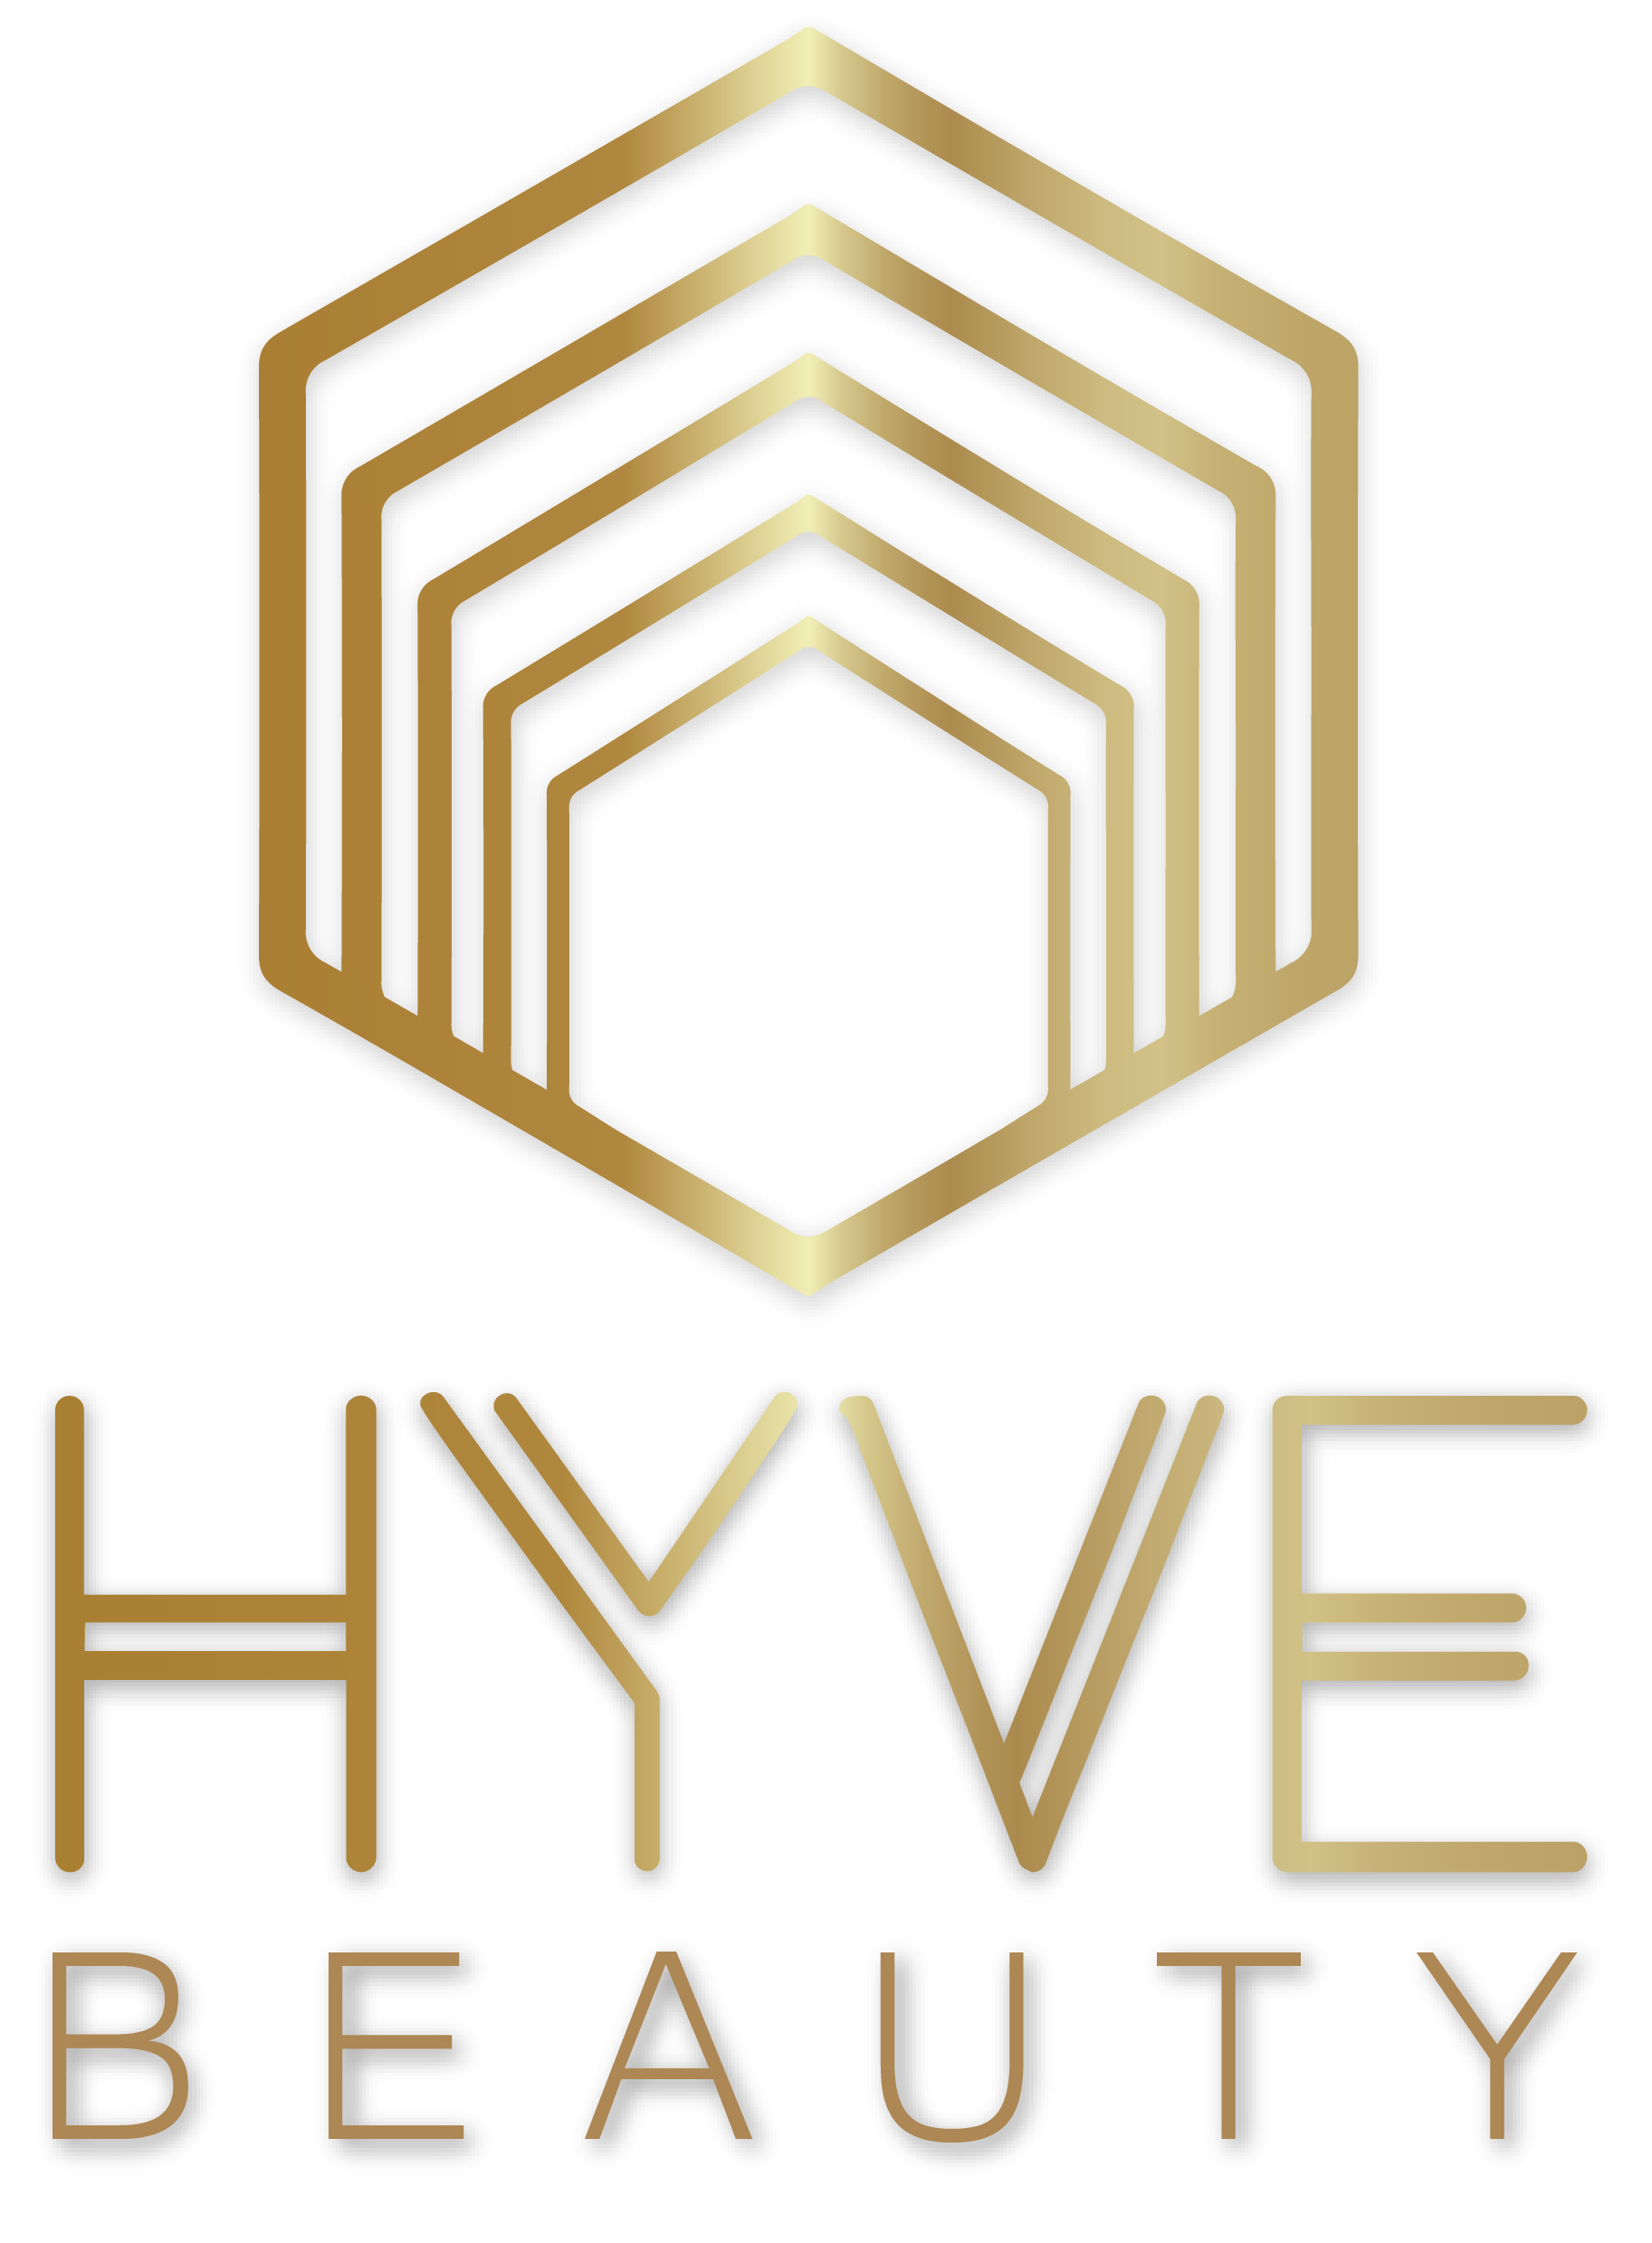 Hyve Beauty Botched Ink North American Distributor